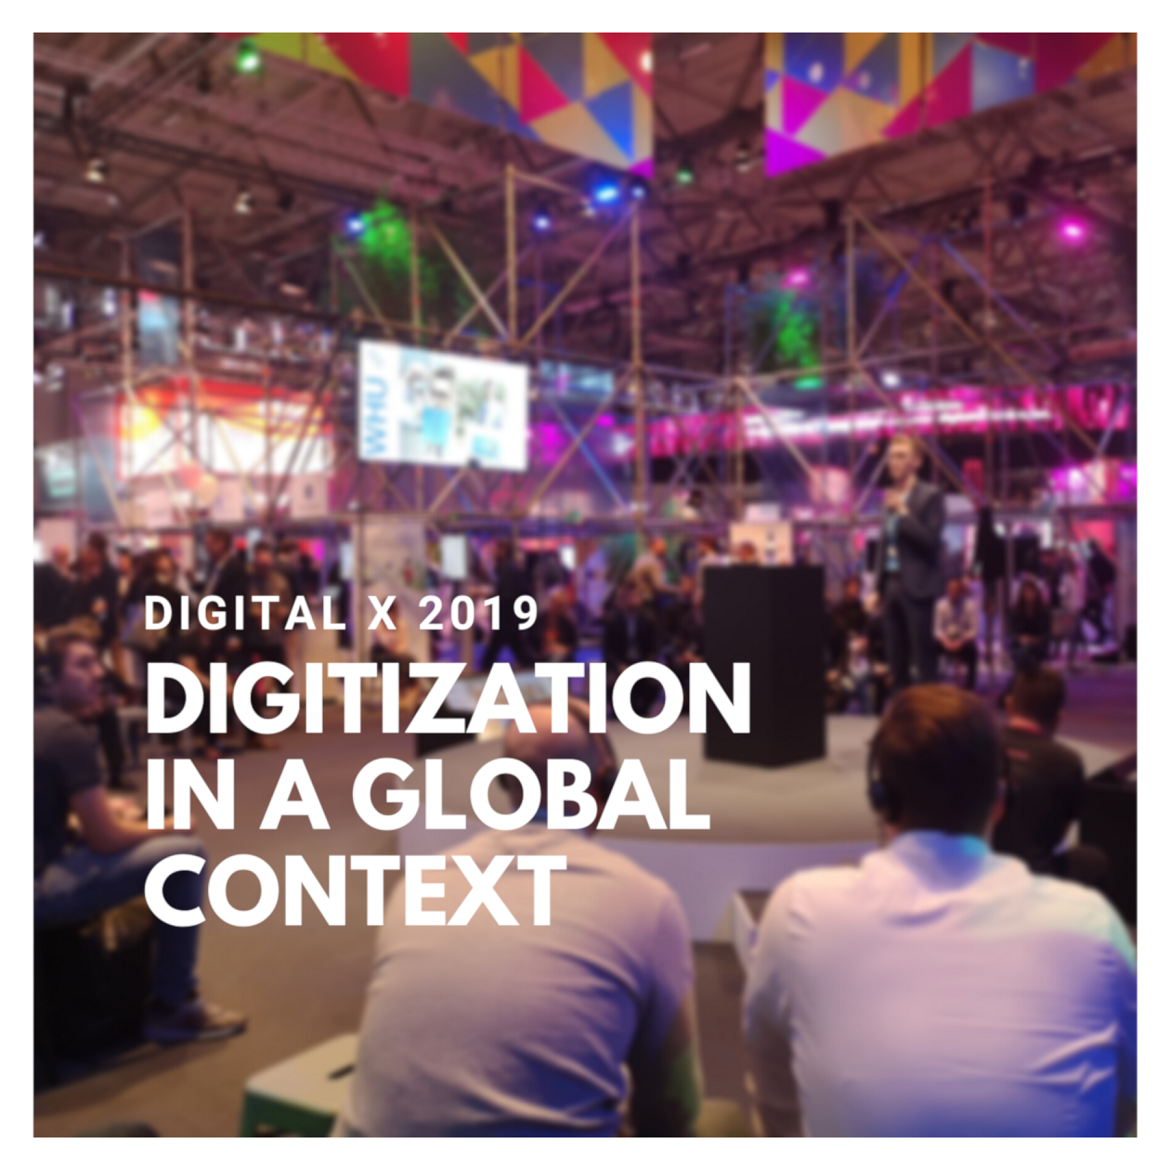 Digitization in a global context